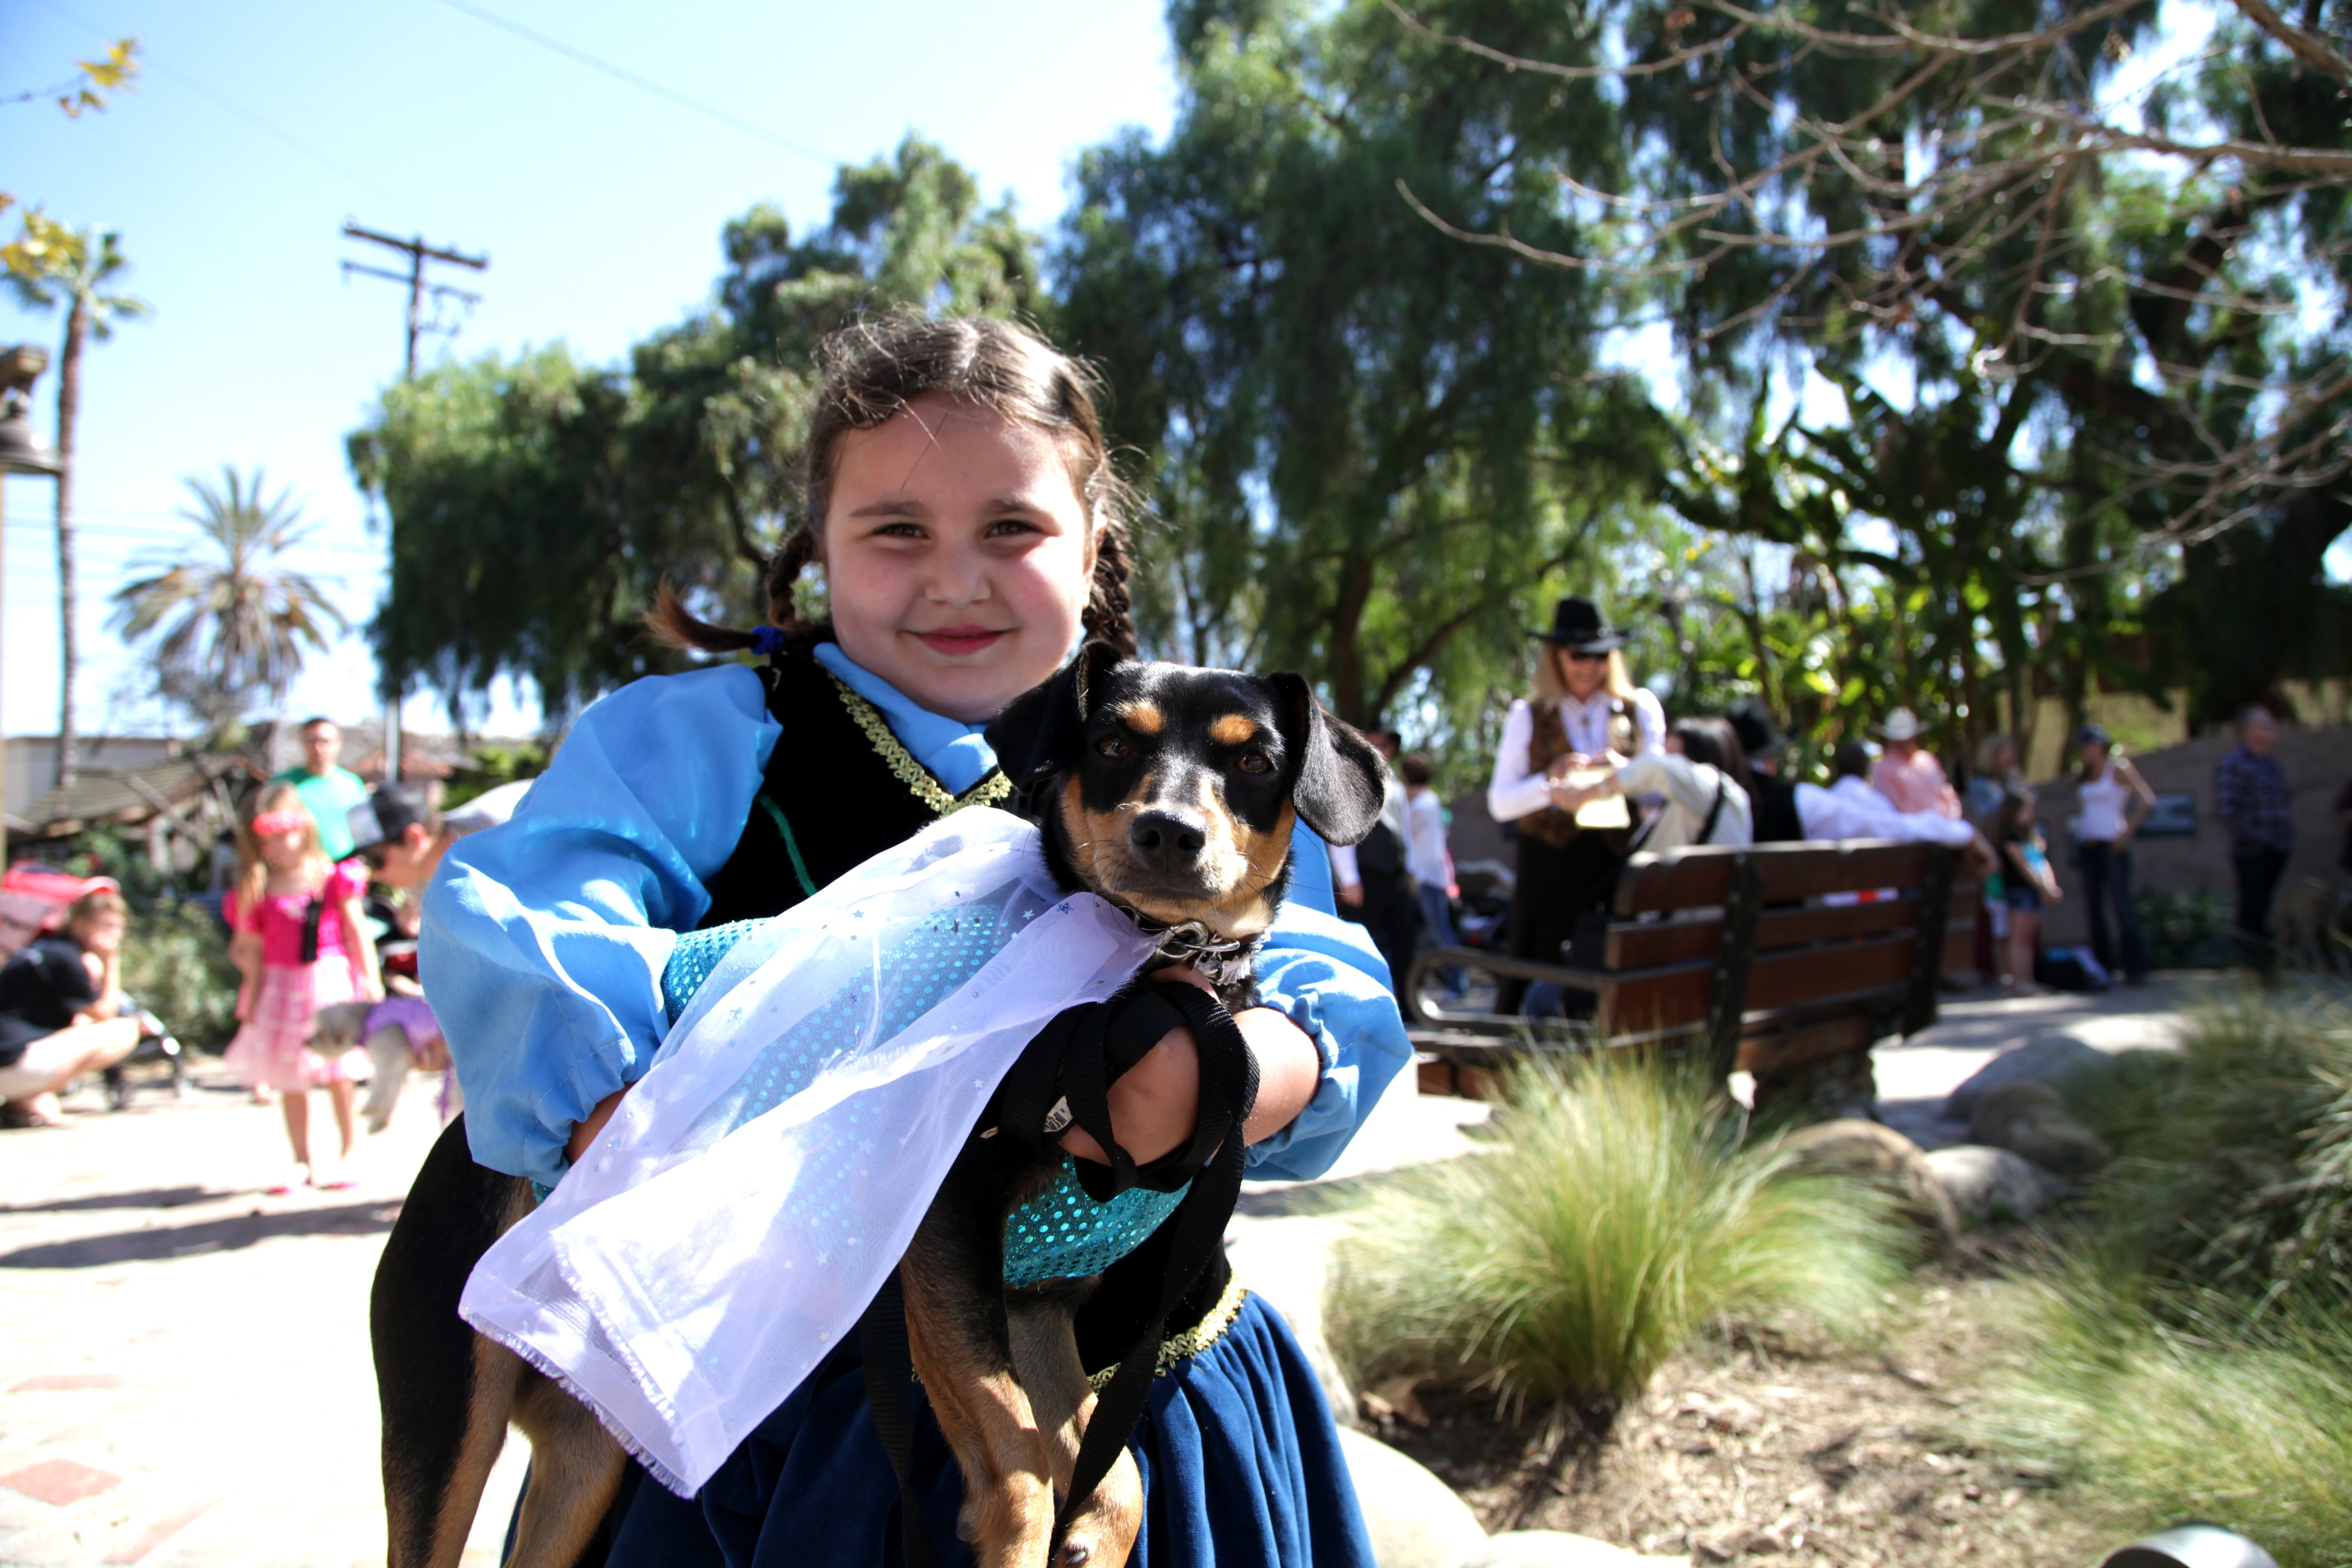 Sophia Maria and her dog, Coco, stop for a photo while going through the parade route. Photo by Brian Park